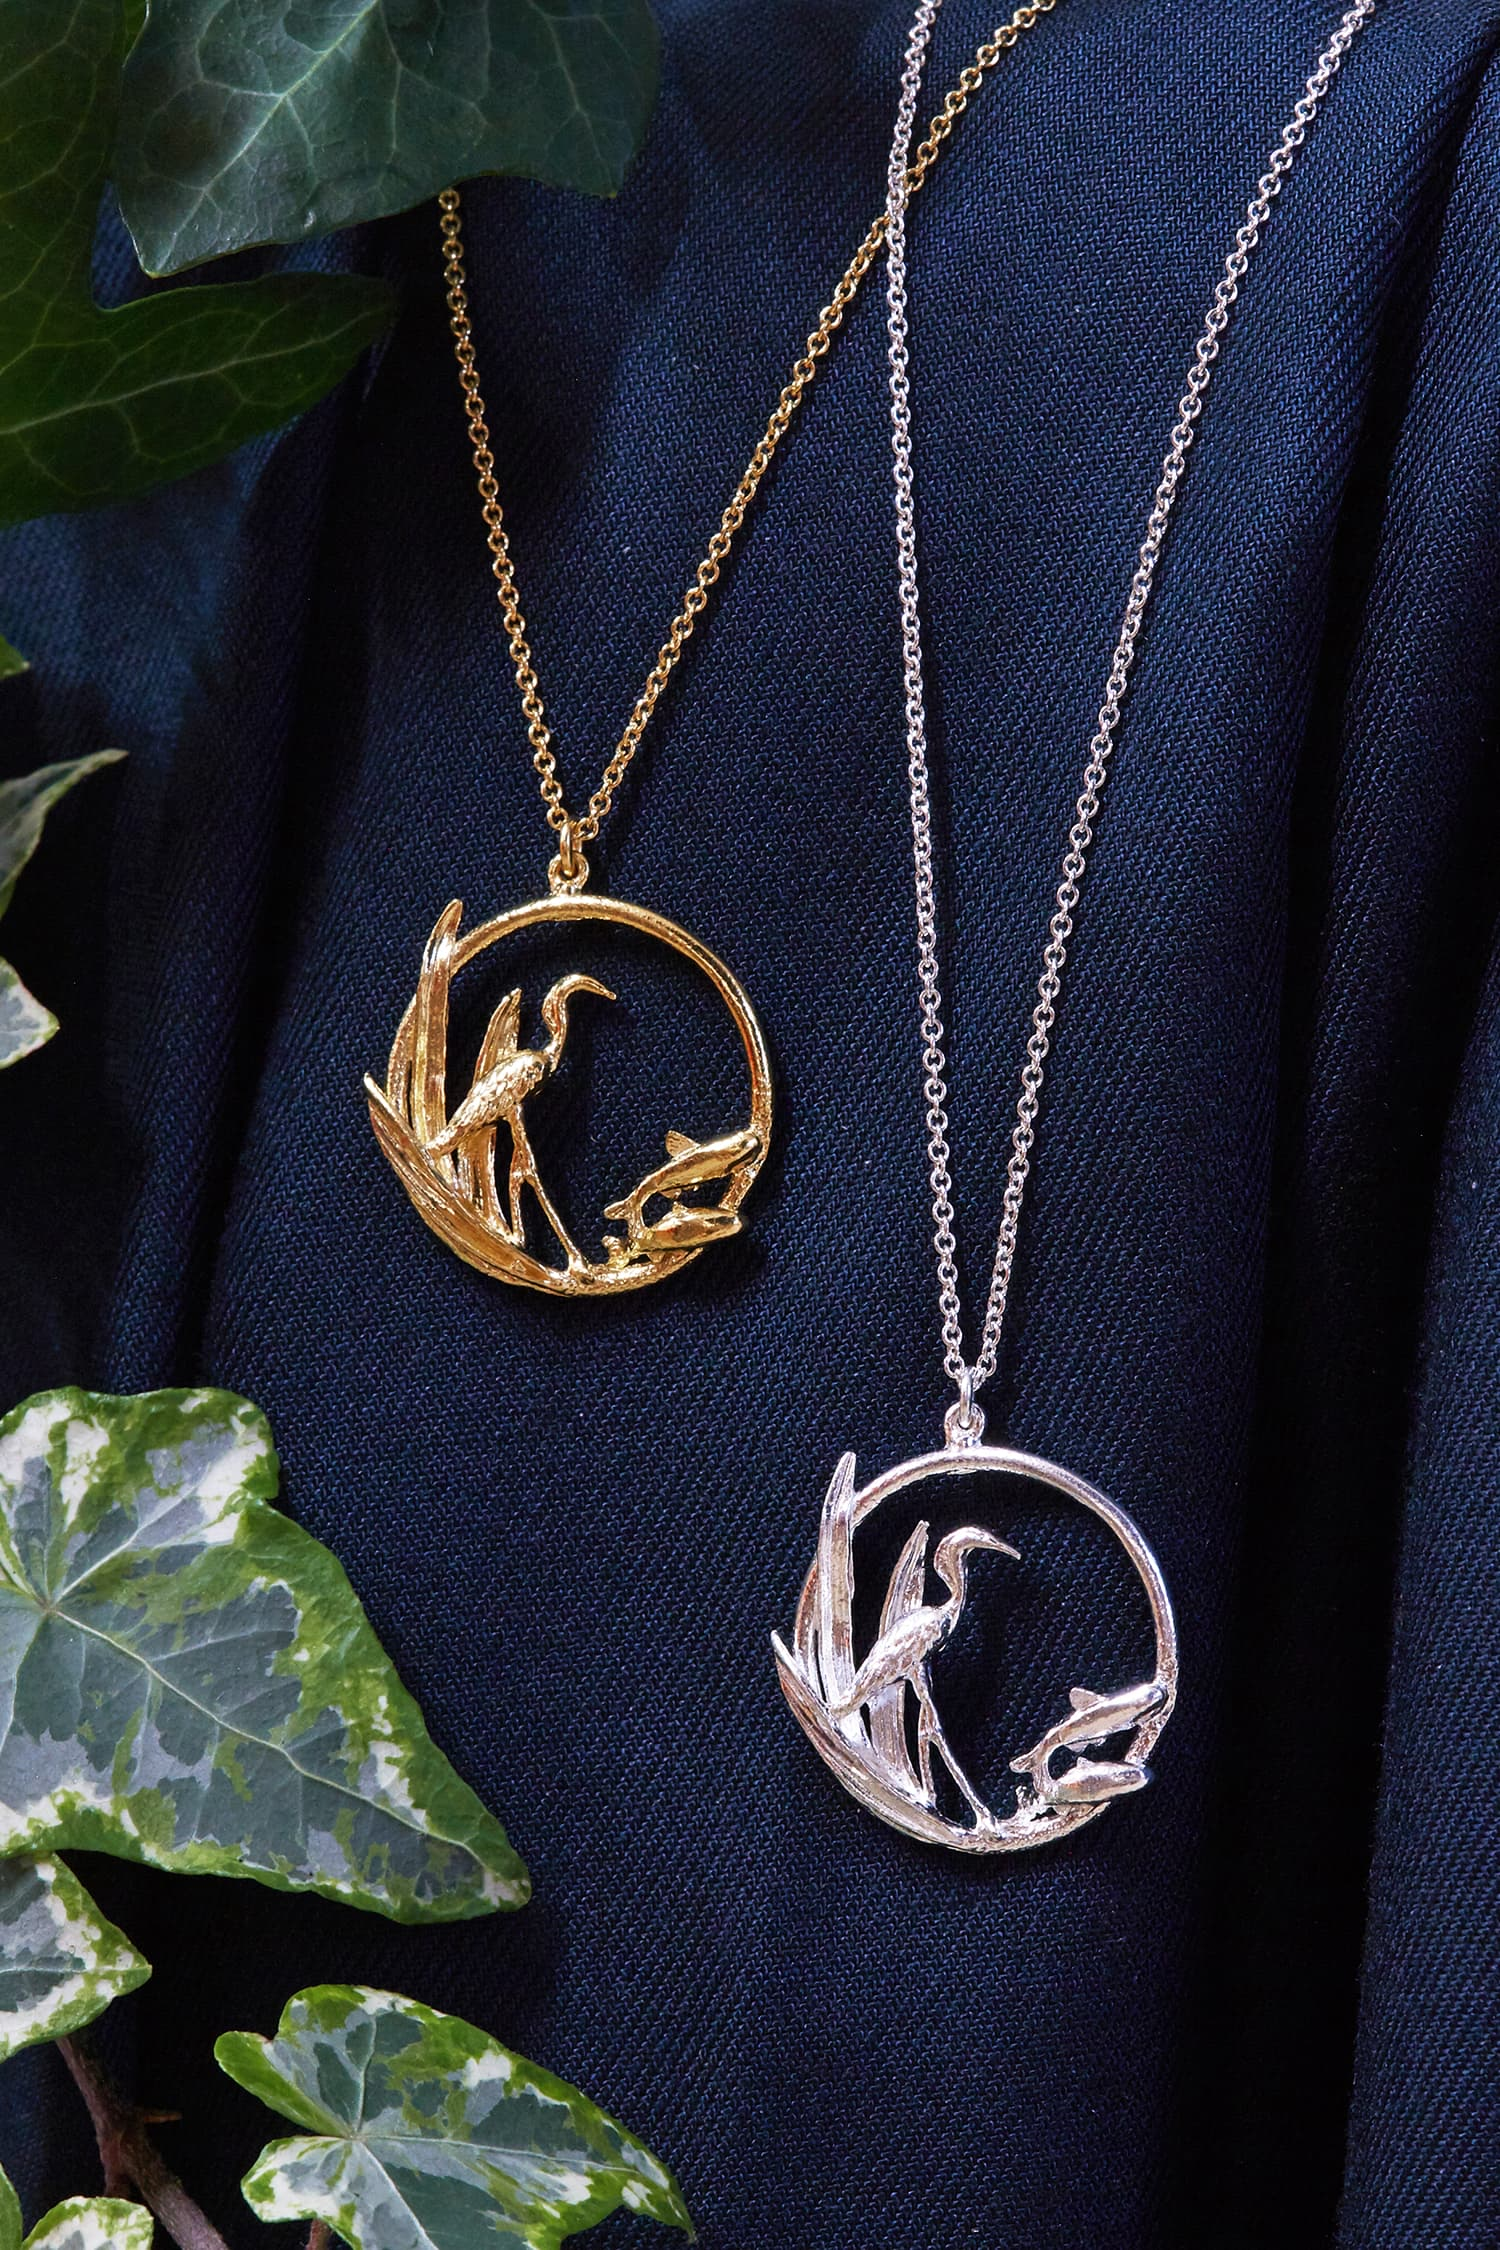 Two Heron & Fish Loop silver and gold plated necklaces hang against blue fabric with ivy